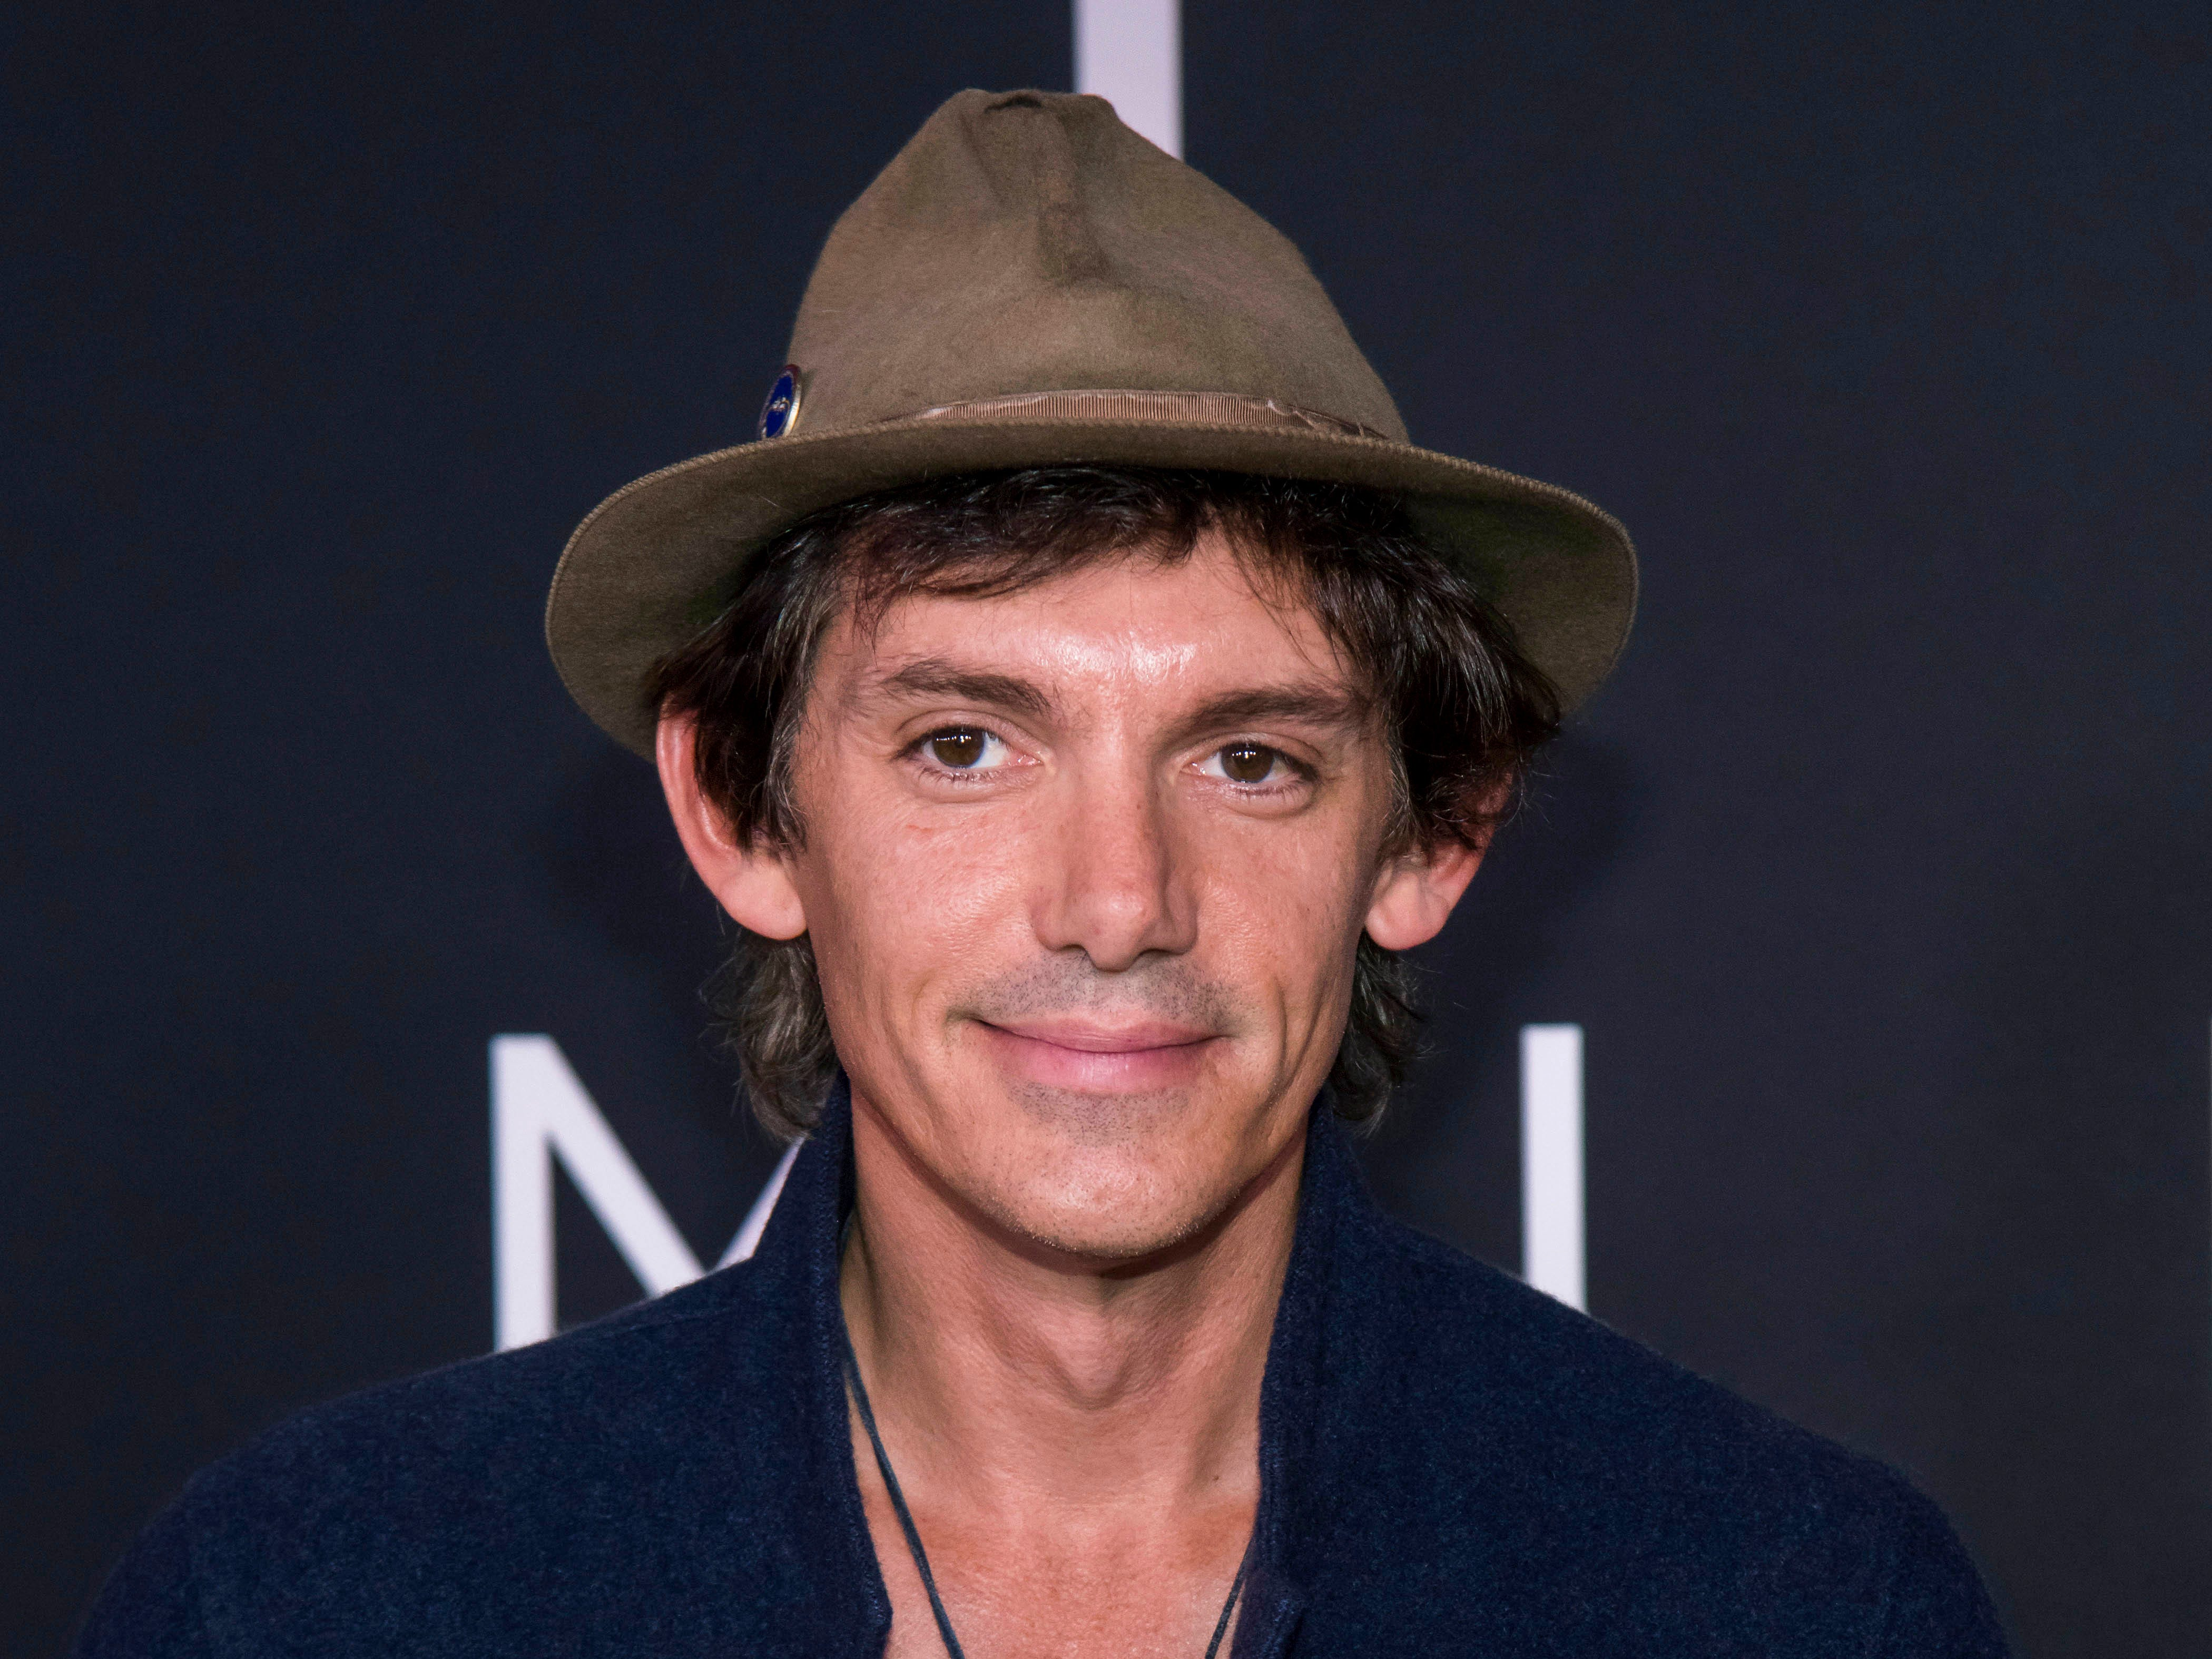 """Lukas Haas attends the """"First Man"""" premiere at the National Air and Space Museum of the Smithsonian Institution on Thursday, Oct.  4, 2018, in Washington. (Photo by Charles Sykes/Invision/AP) ORG XMIT: NYCS103"""